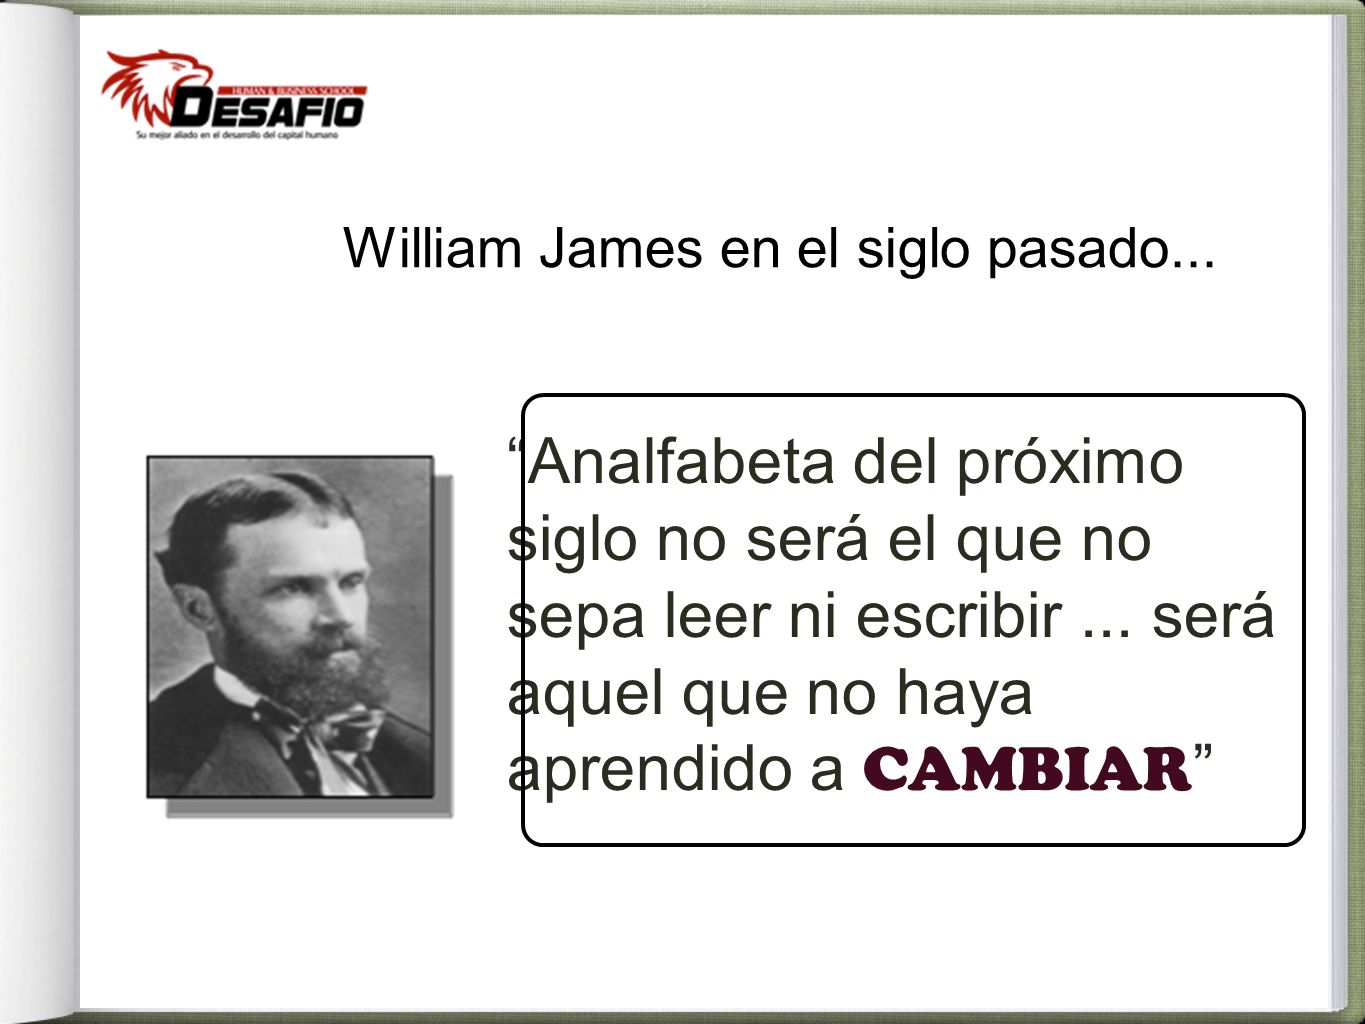 William James en el siglo pasado...